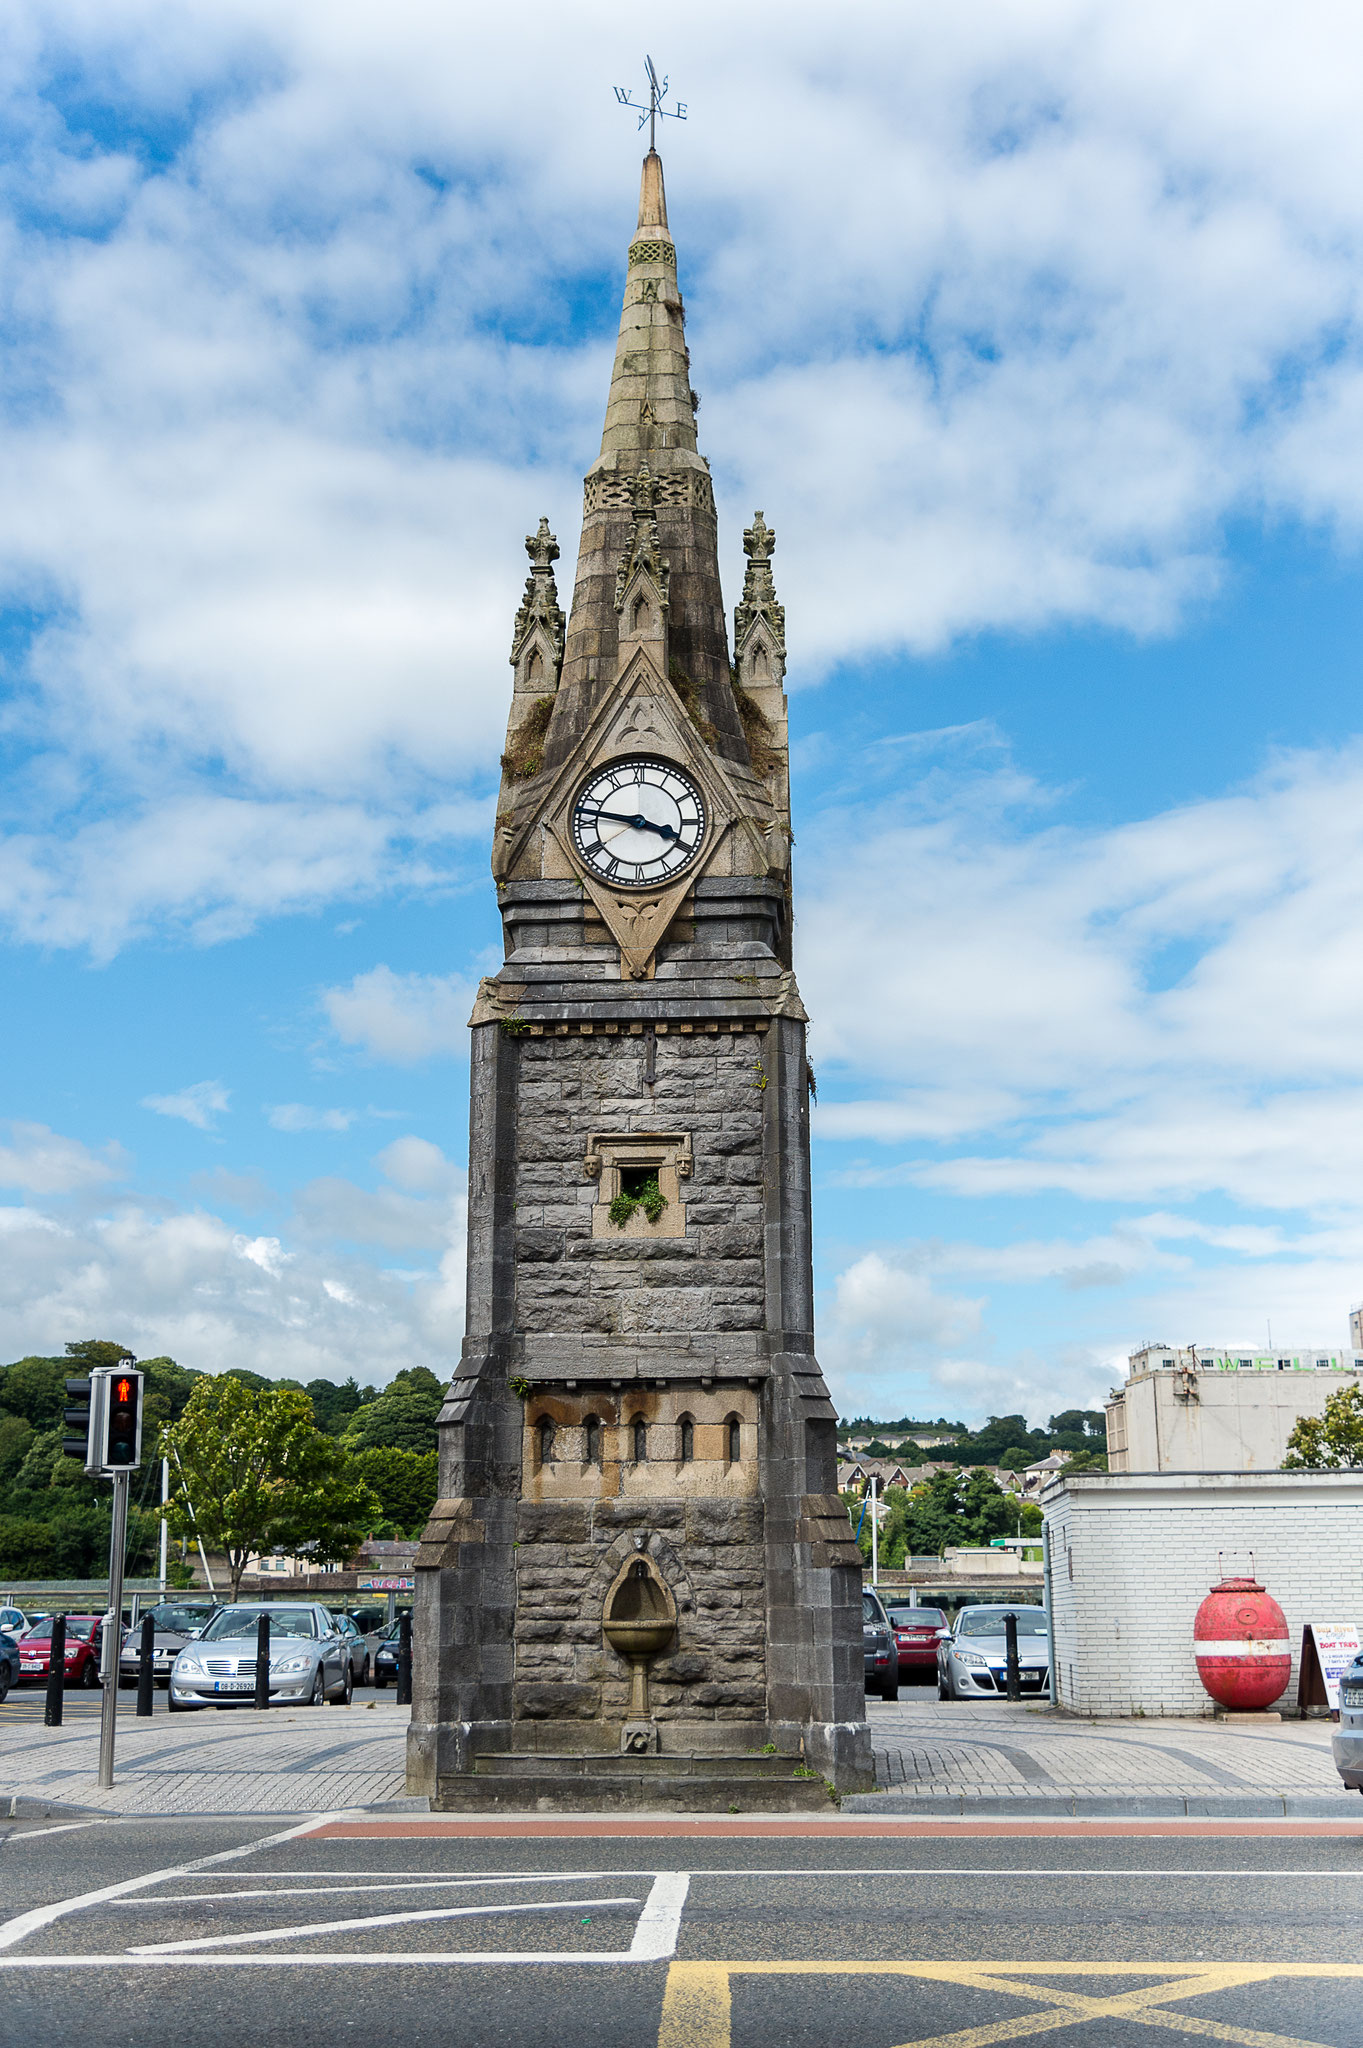 _D4S4878_Waterford-Irlande